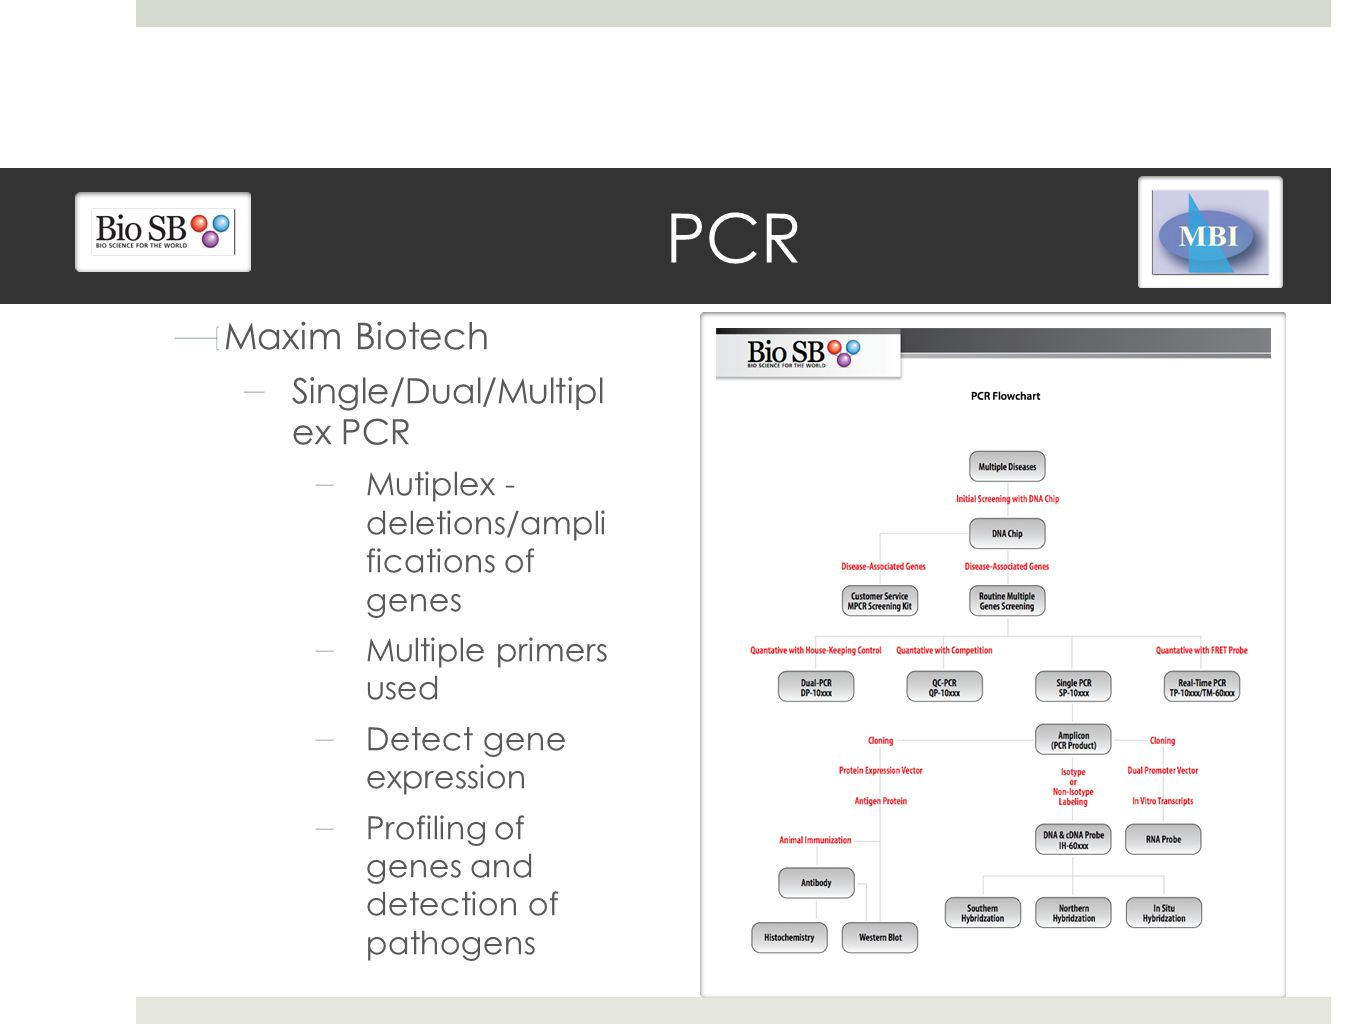 PCR Maxim Biotech Single/Dual/Multipl ex PCR Mutiplex - deletions/ampli fications of genes Multiple primers used Detect gene expression Profiling of genes and detection of pathogens